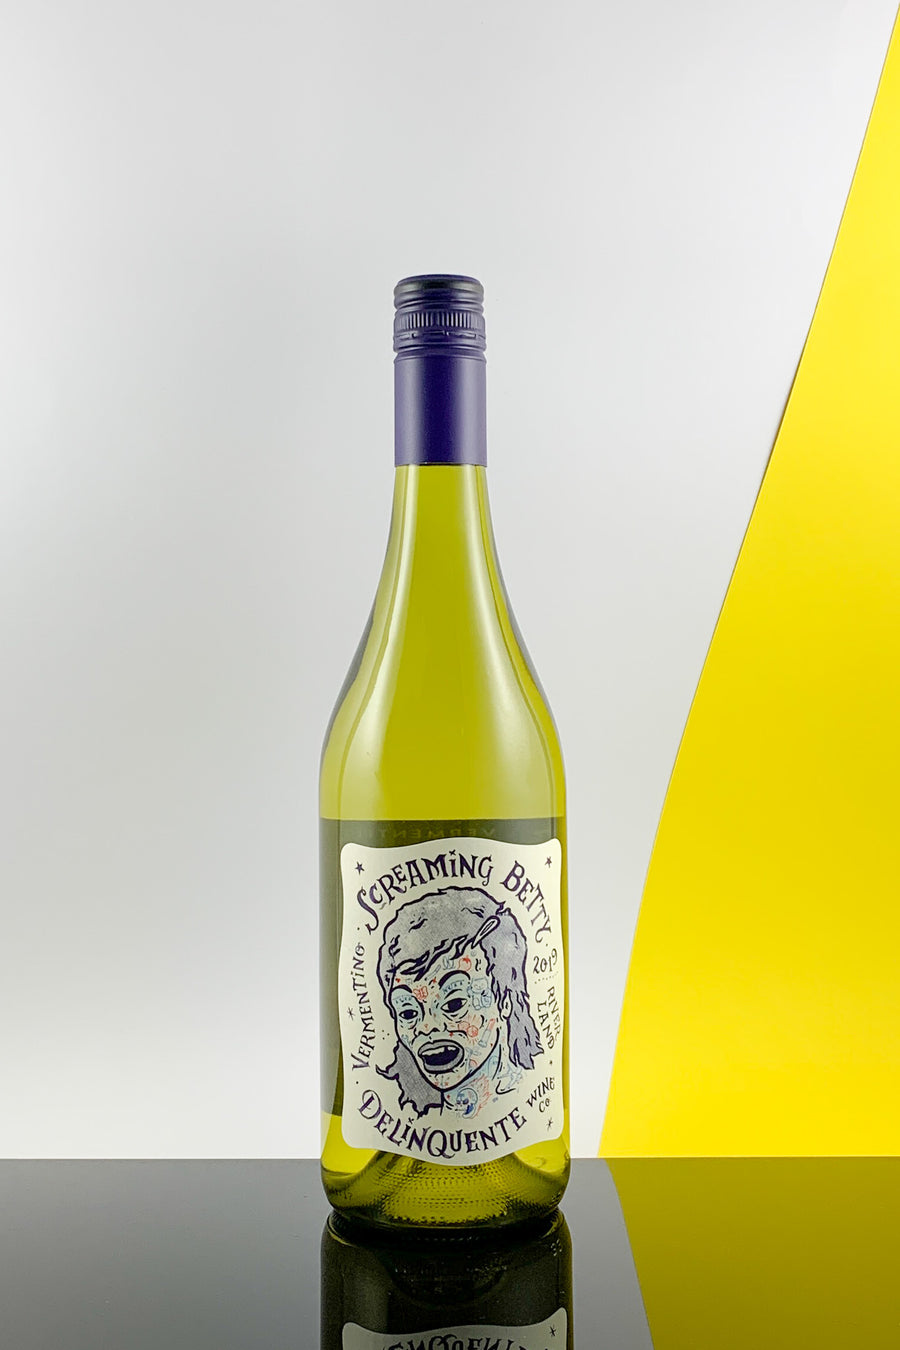 Delinquente Screaming Betty Vermentino 2019